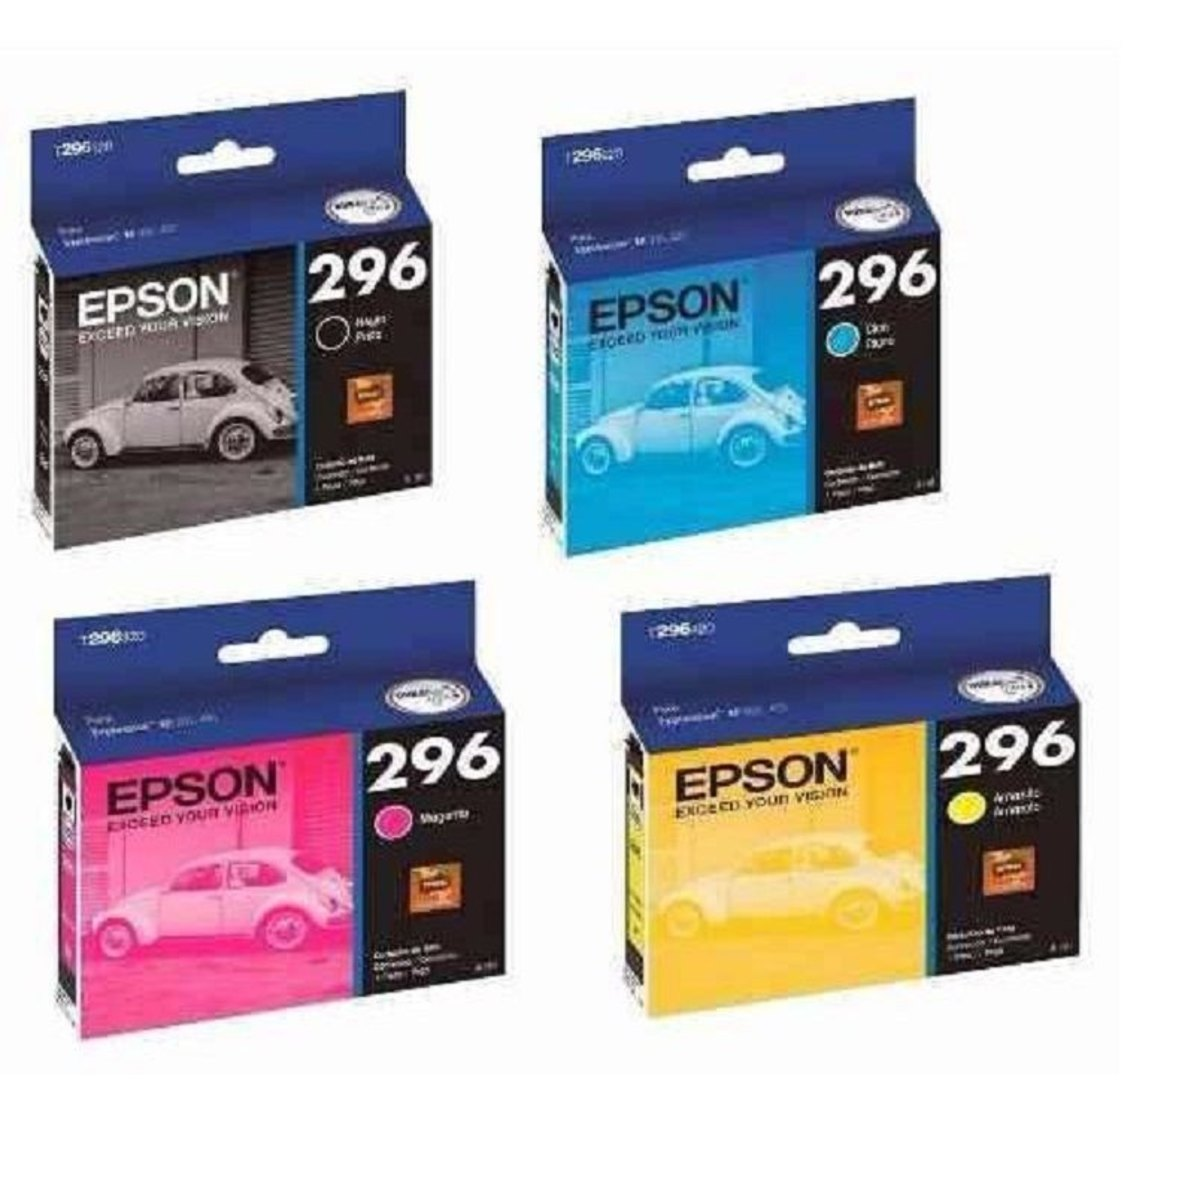 Kit 4 cartuchos originais epson para 296 xp 231 xp 431